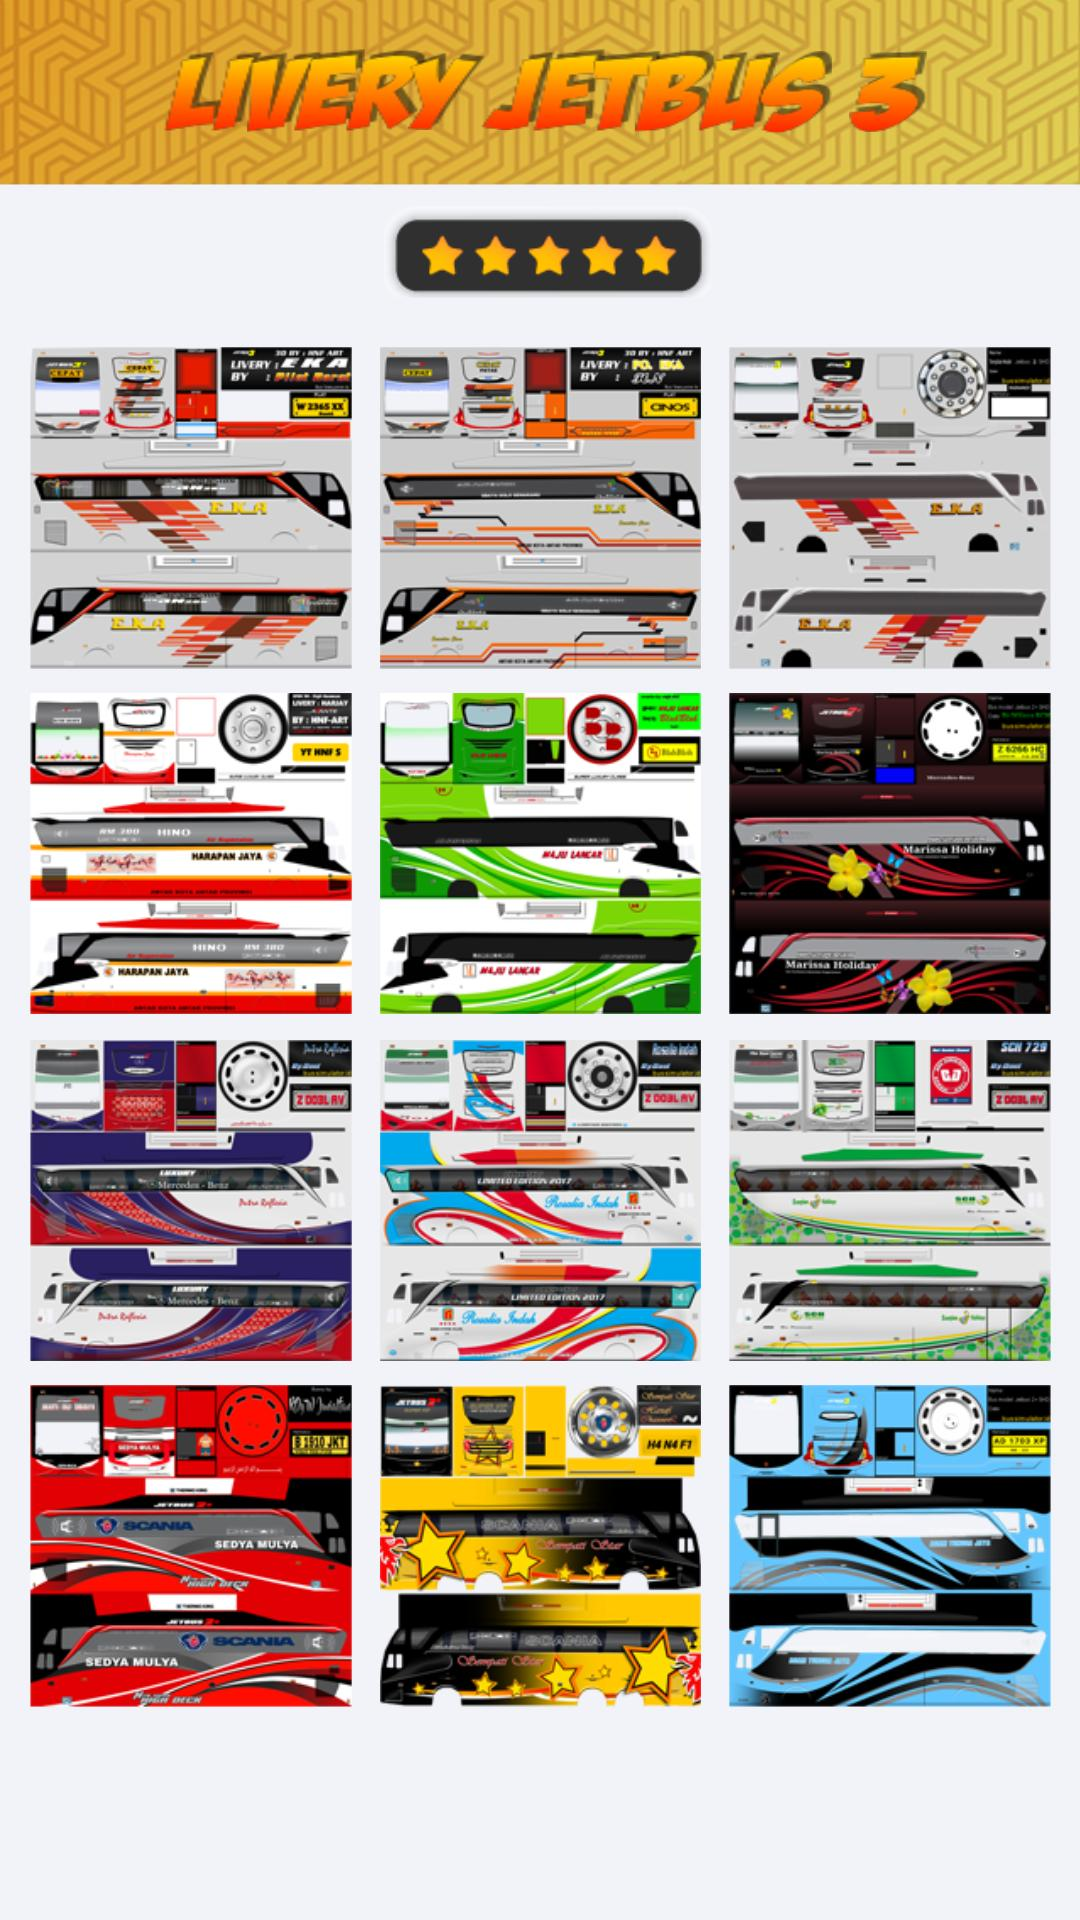 Livery Eka Jetbus 3 For Android Apk Download